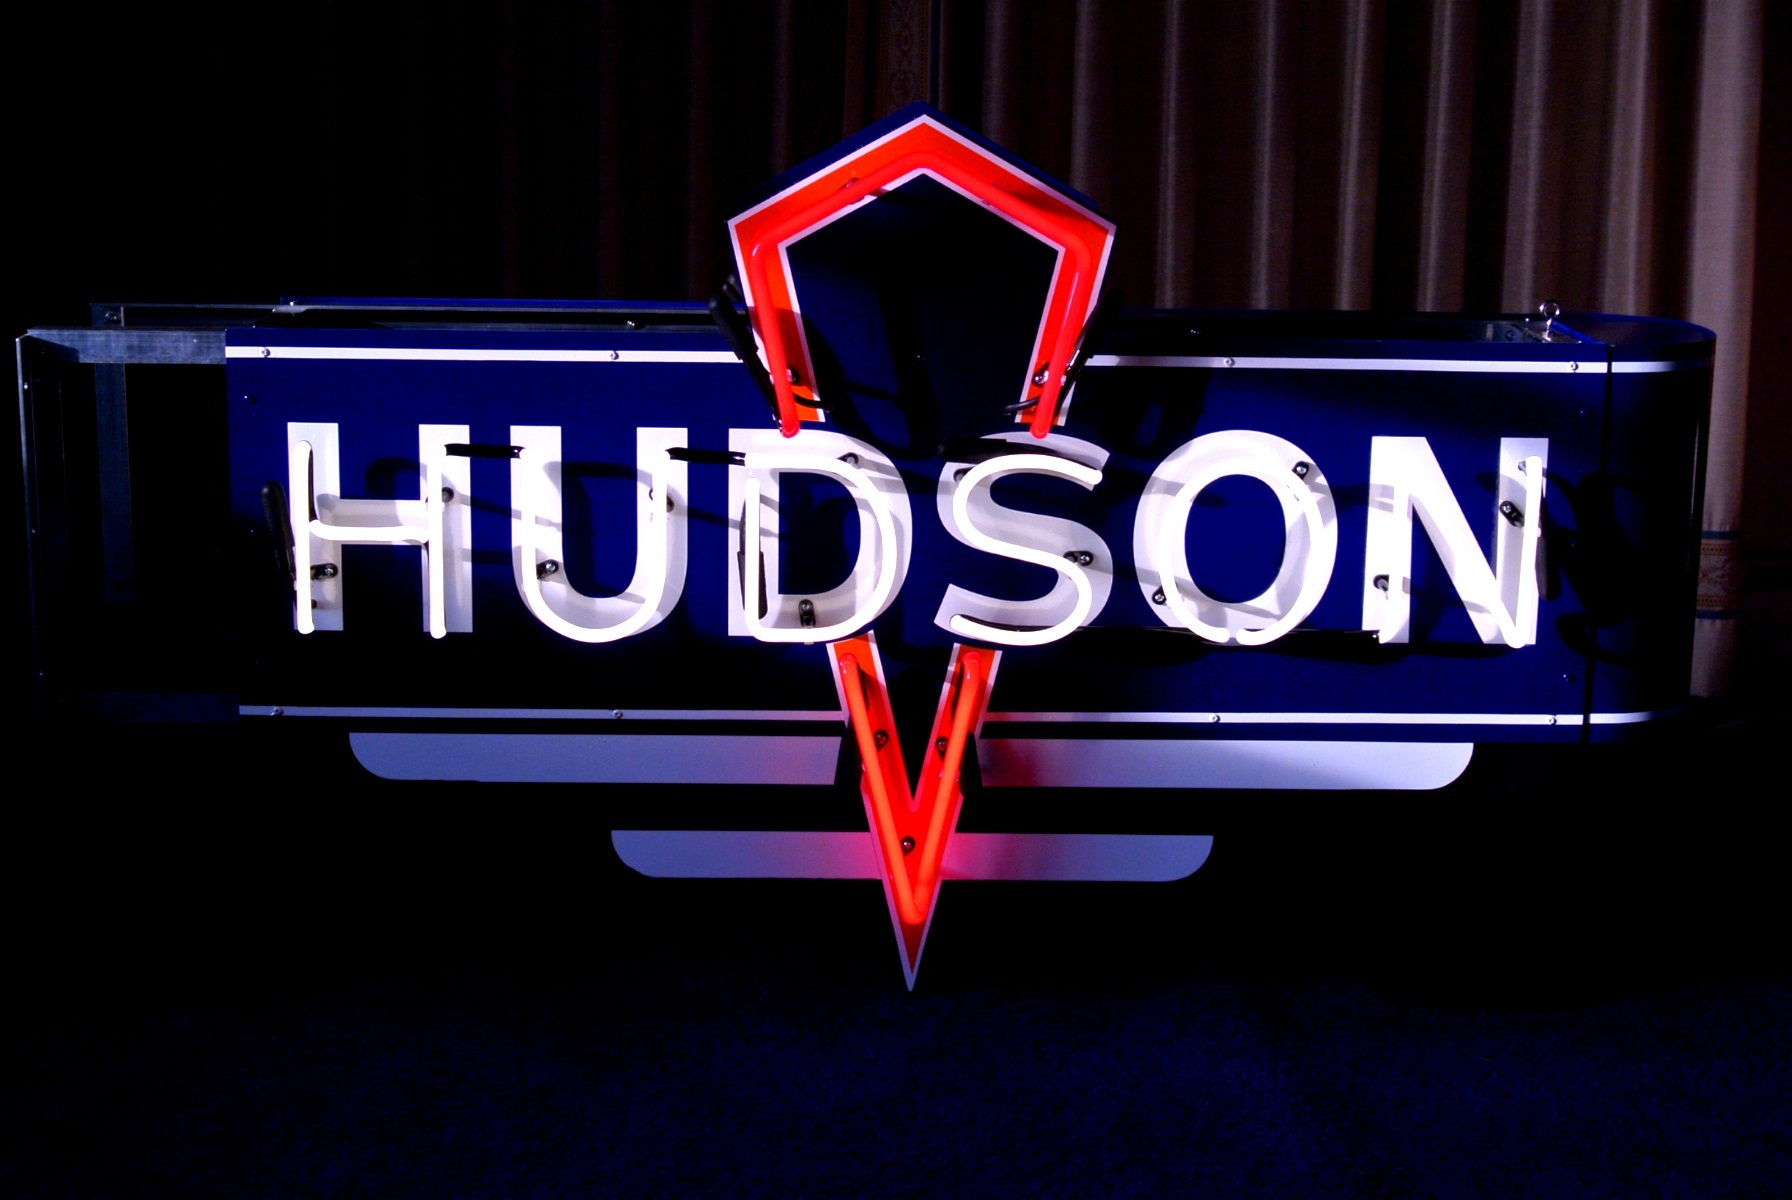 HUDSON DOUBLE SIDED DEALERSHIP NEON SIGN BY JOHN BARTON - BartonNeonMagic.com